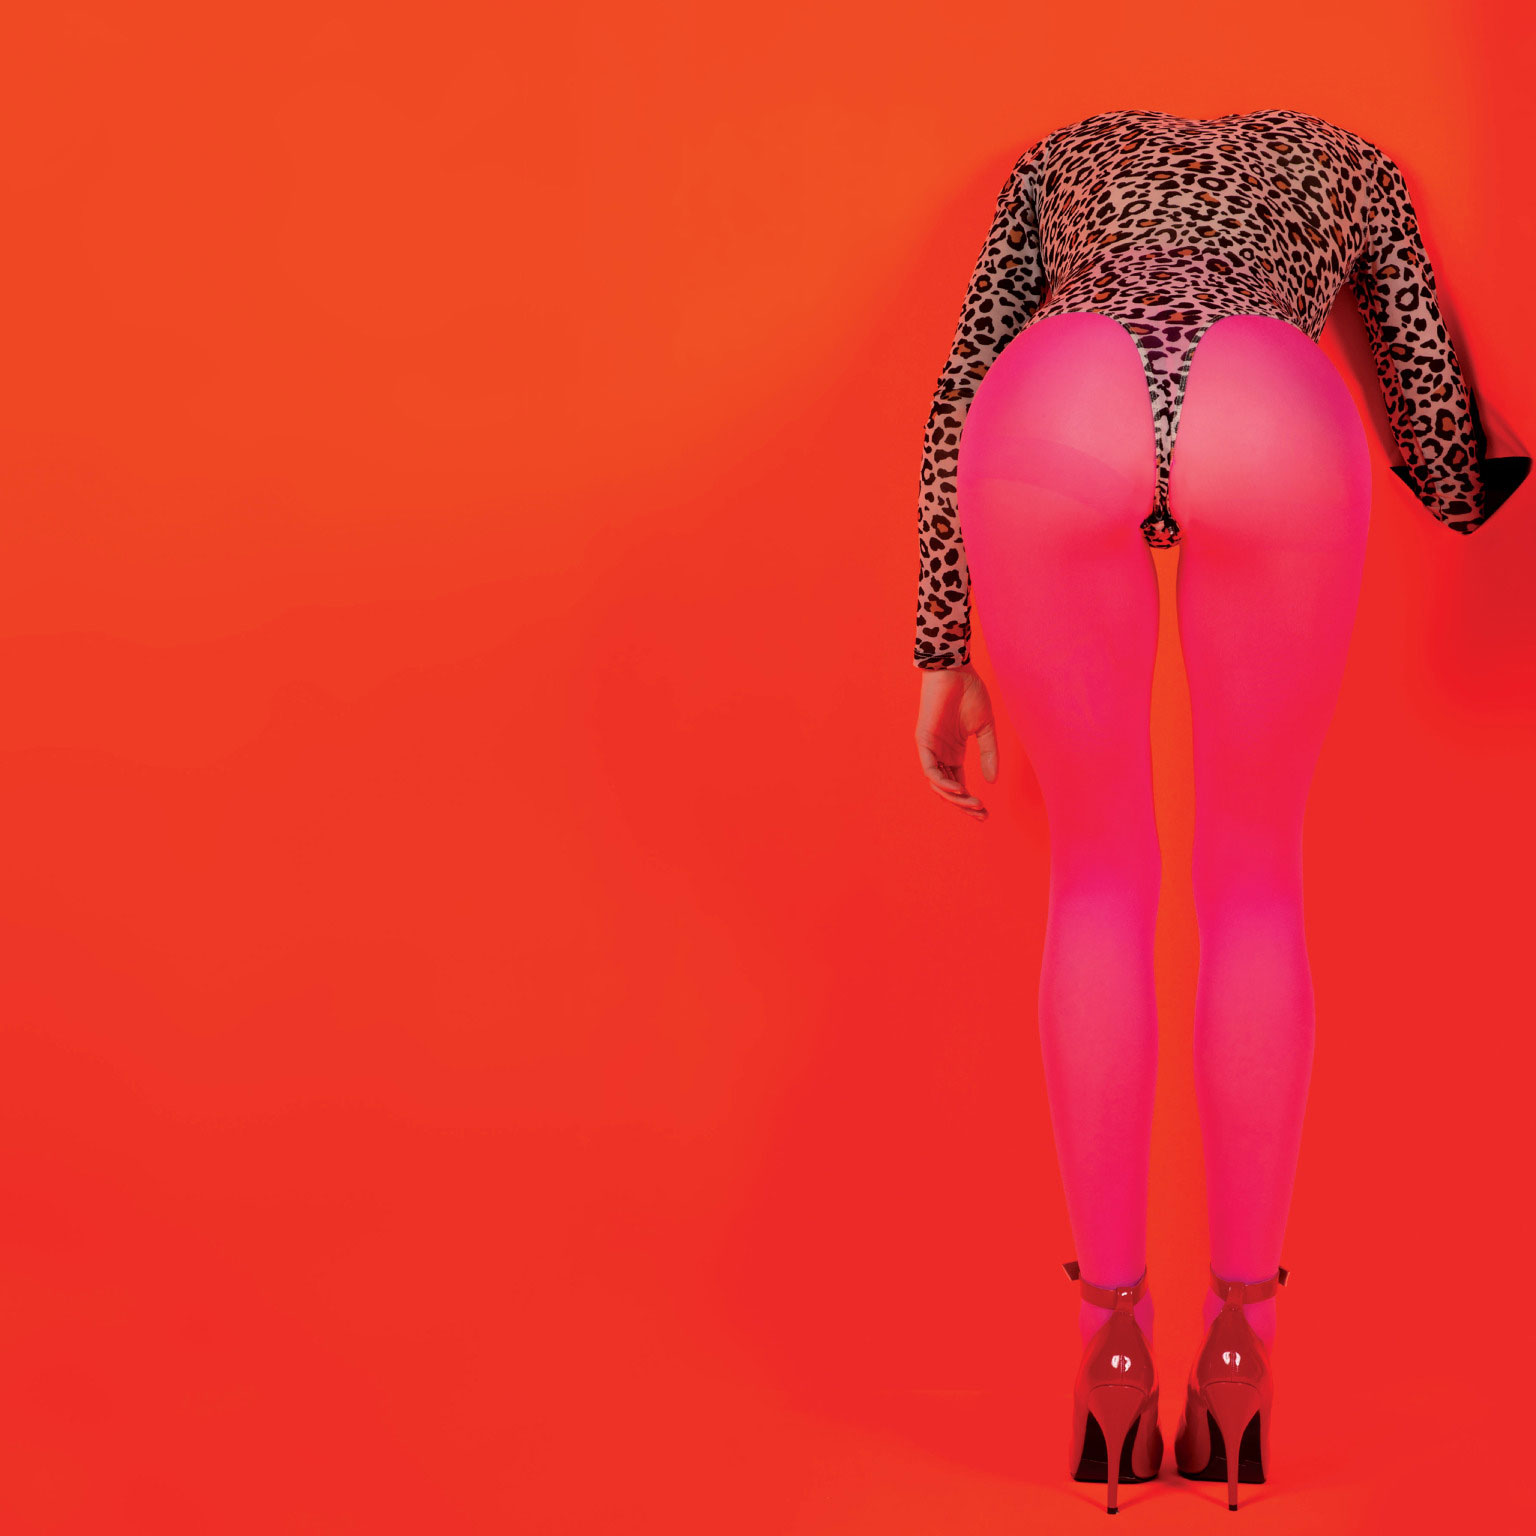 stv masseduction packshot Top 50 Albums of 2017